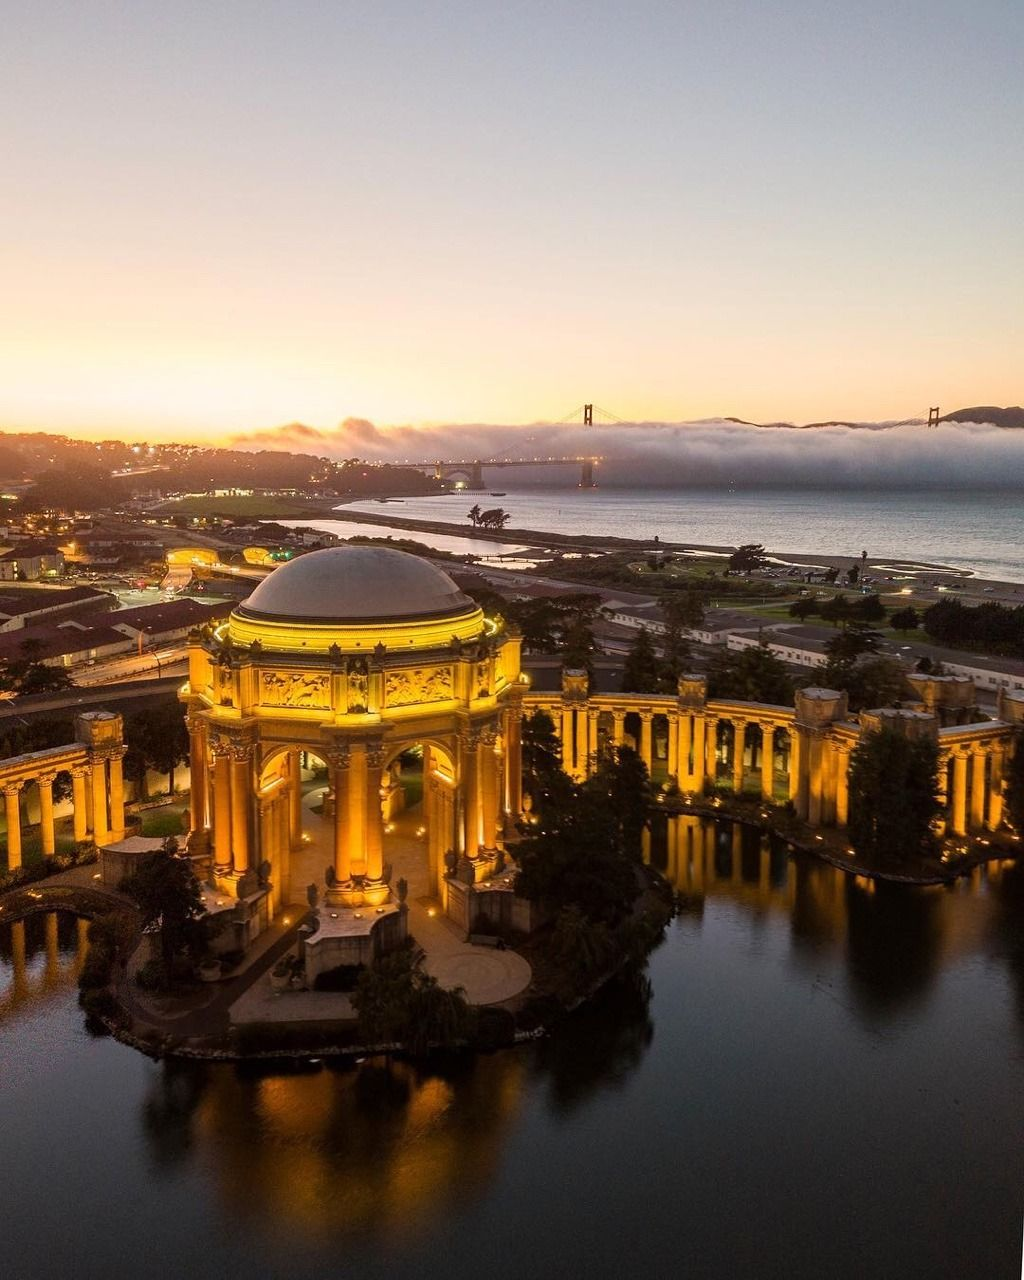 Art Places In San Francisco: Palace Of Fine Arts By @JacksonPartin #sanfrancisco #sf